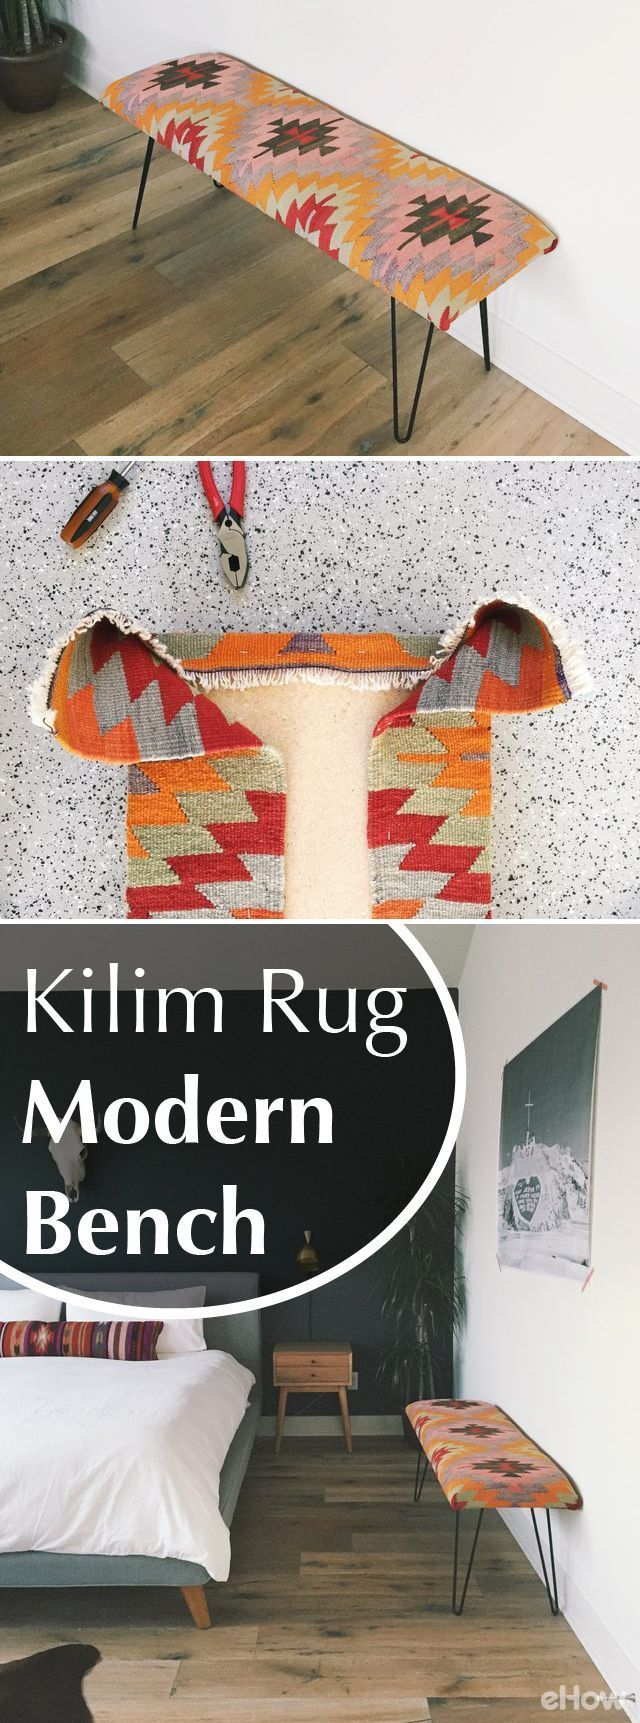 This is a quick and easy DIY for a mid-century modern-style bench using a cheery colored kilim rug! We love the way the vibrant colors of the fabric really brightened up our nearly neutral bedroom, making the bench the perfect statement piece. With less than $200 and a couple hours of your time, you can easily make one too! www.ehow.com/...